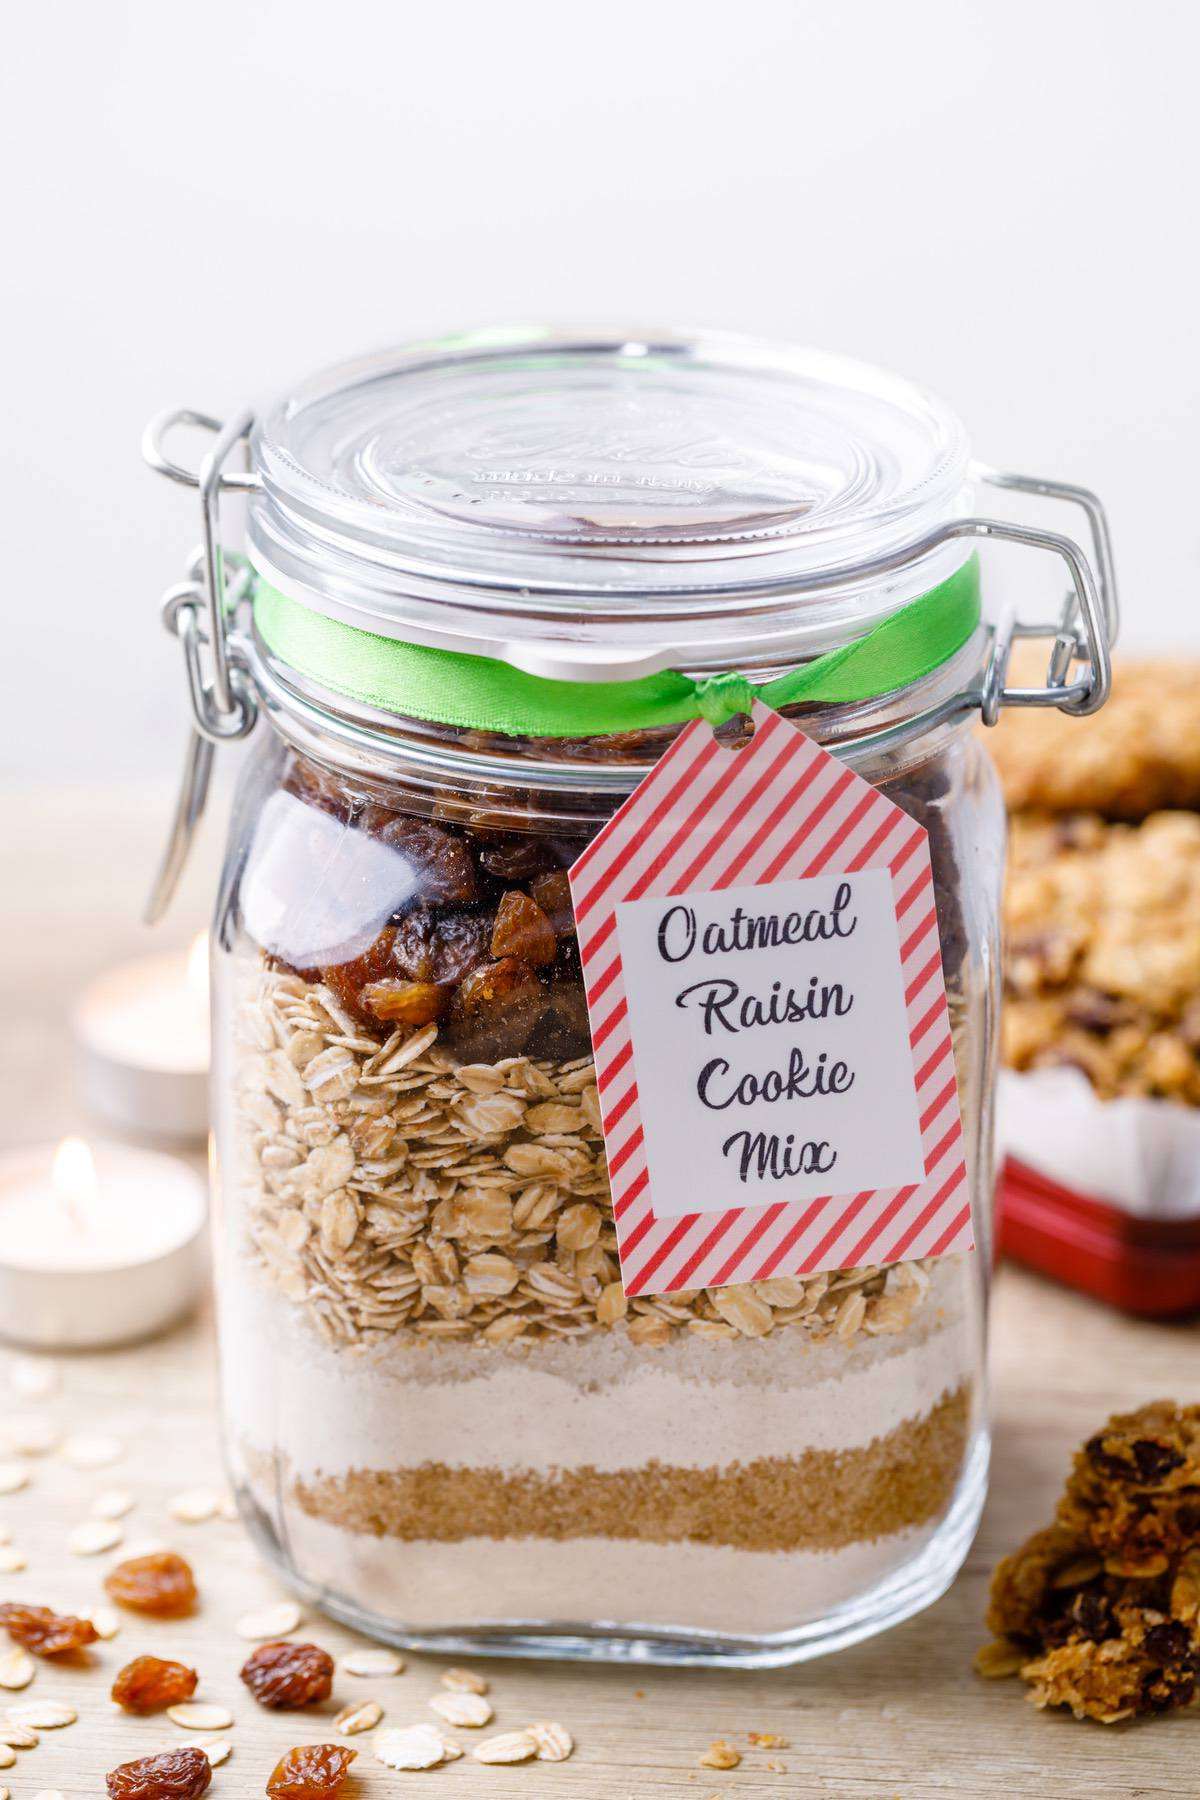 Oatmeal Raisin Cookie Mix